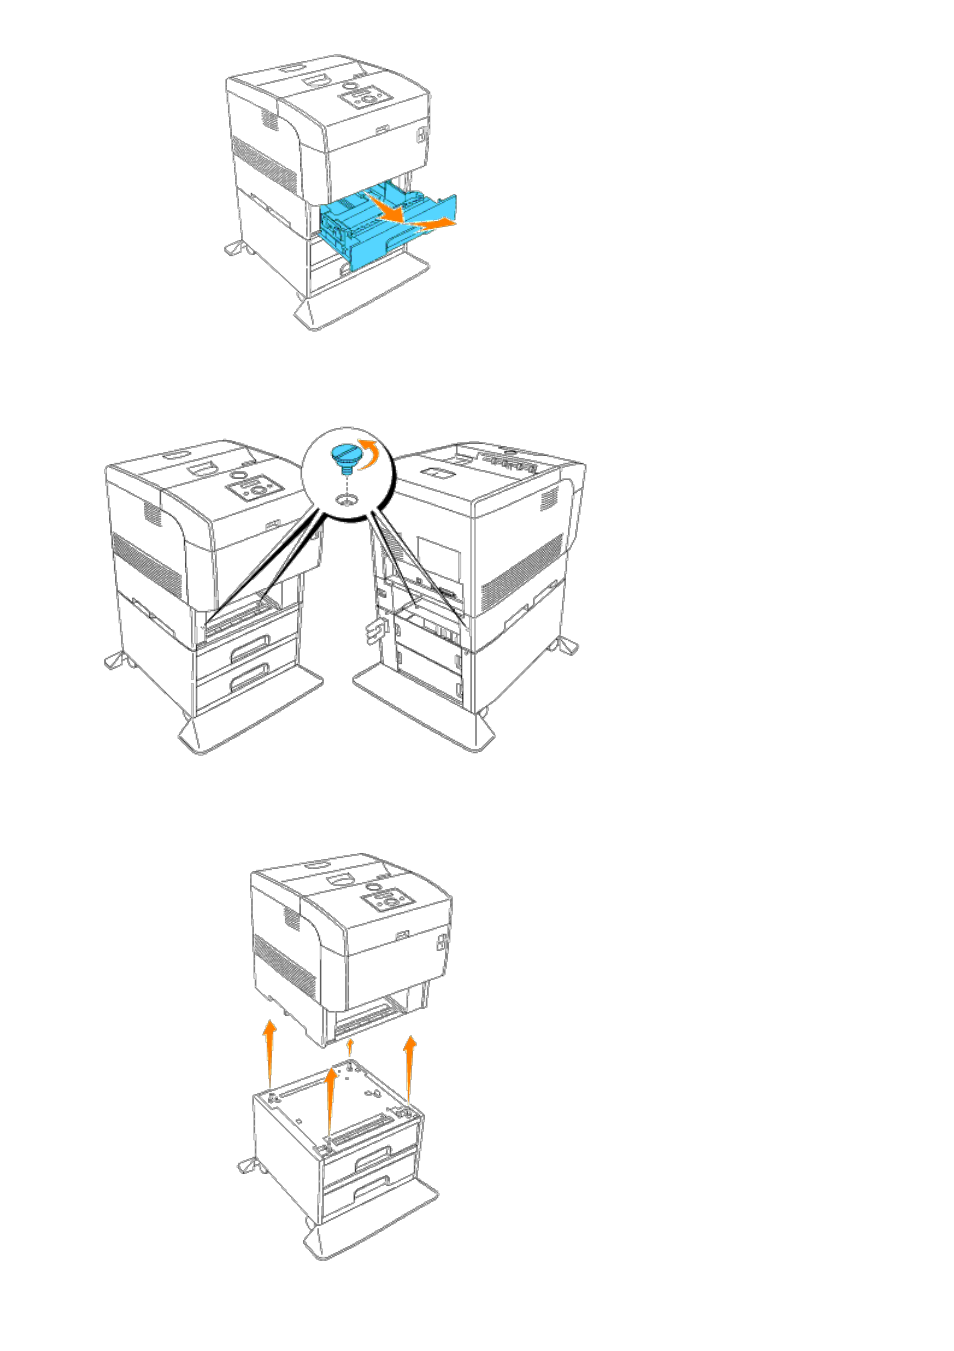 dell 5100cn color laser printer user manual page 218 298 rh manualsdir com dell 5100cn printer driver dell 5100cn user manual